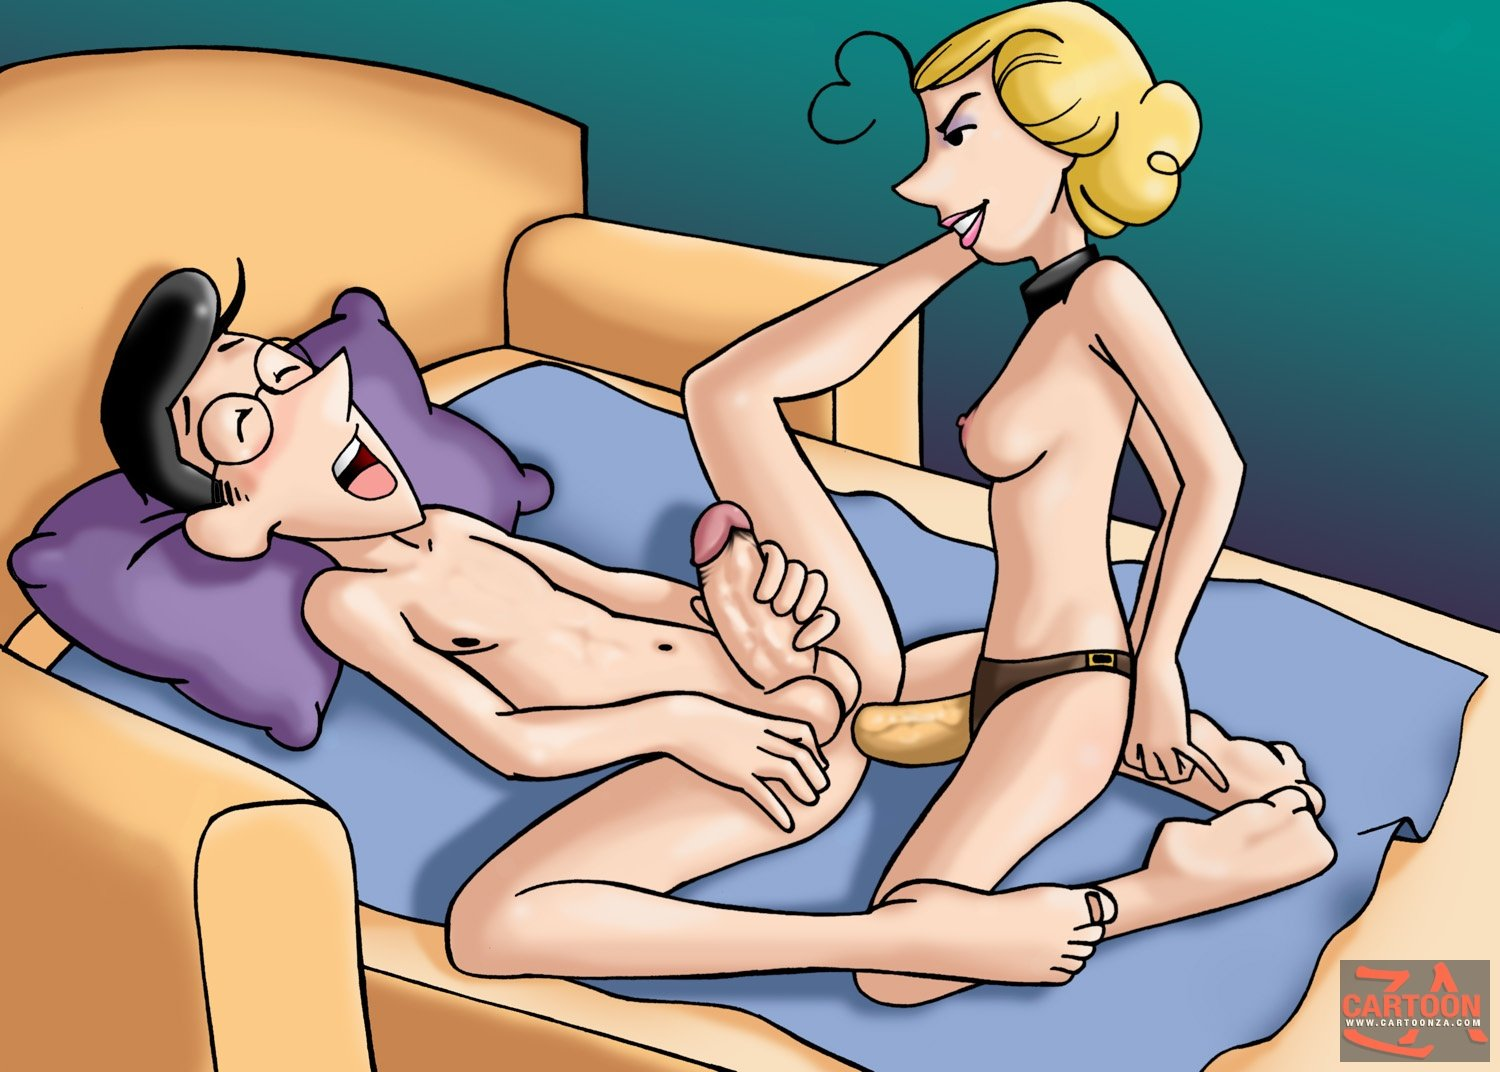 Free cartoon sex stream video